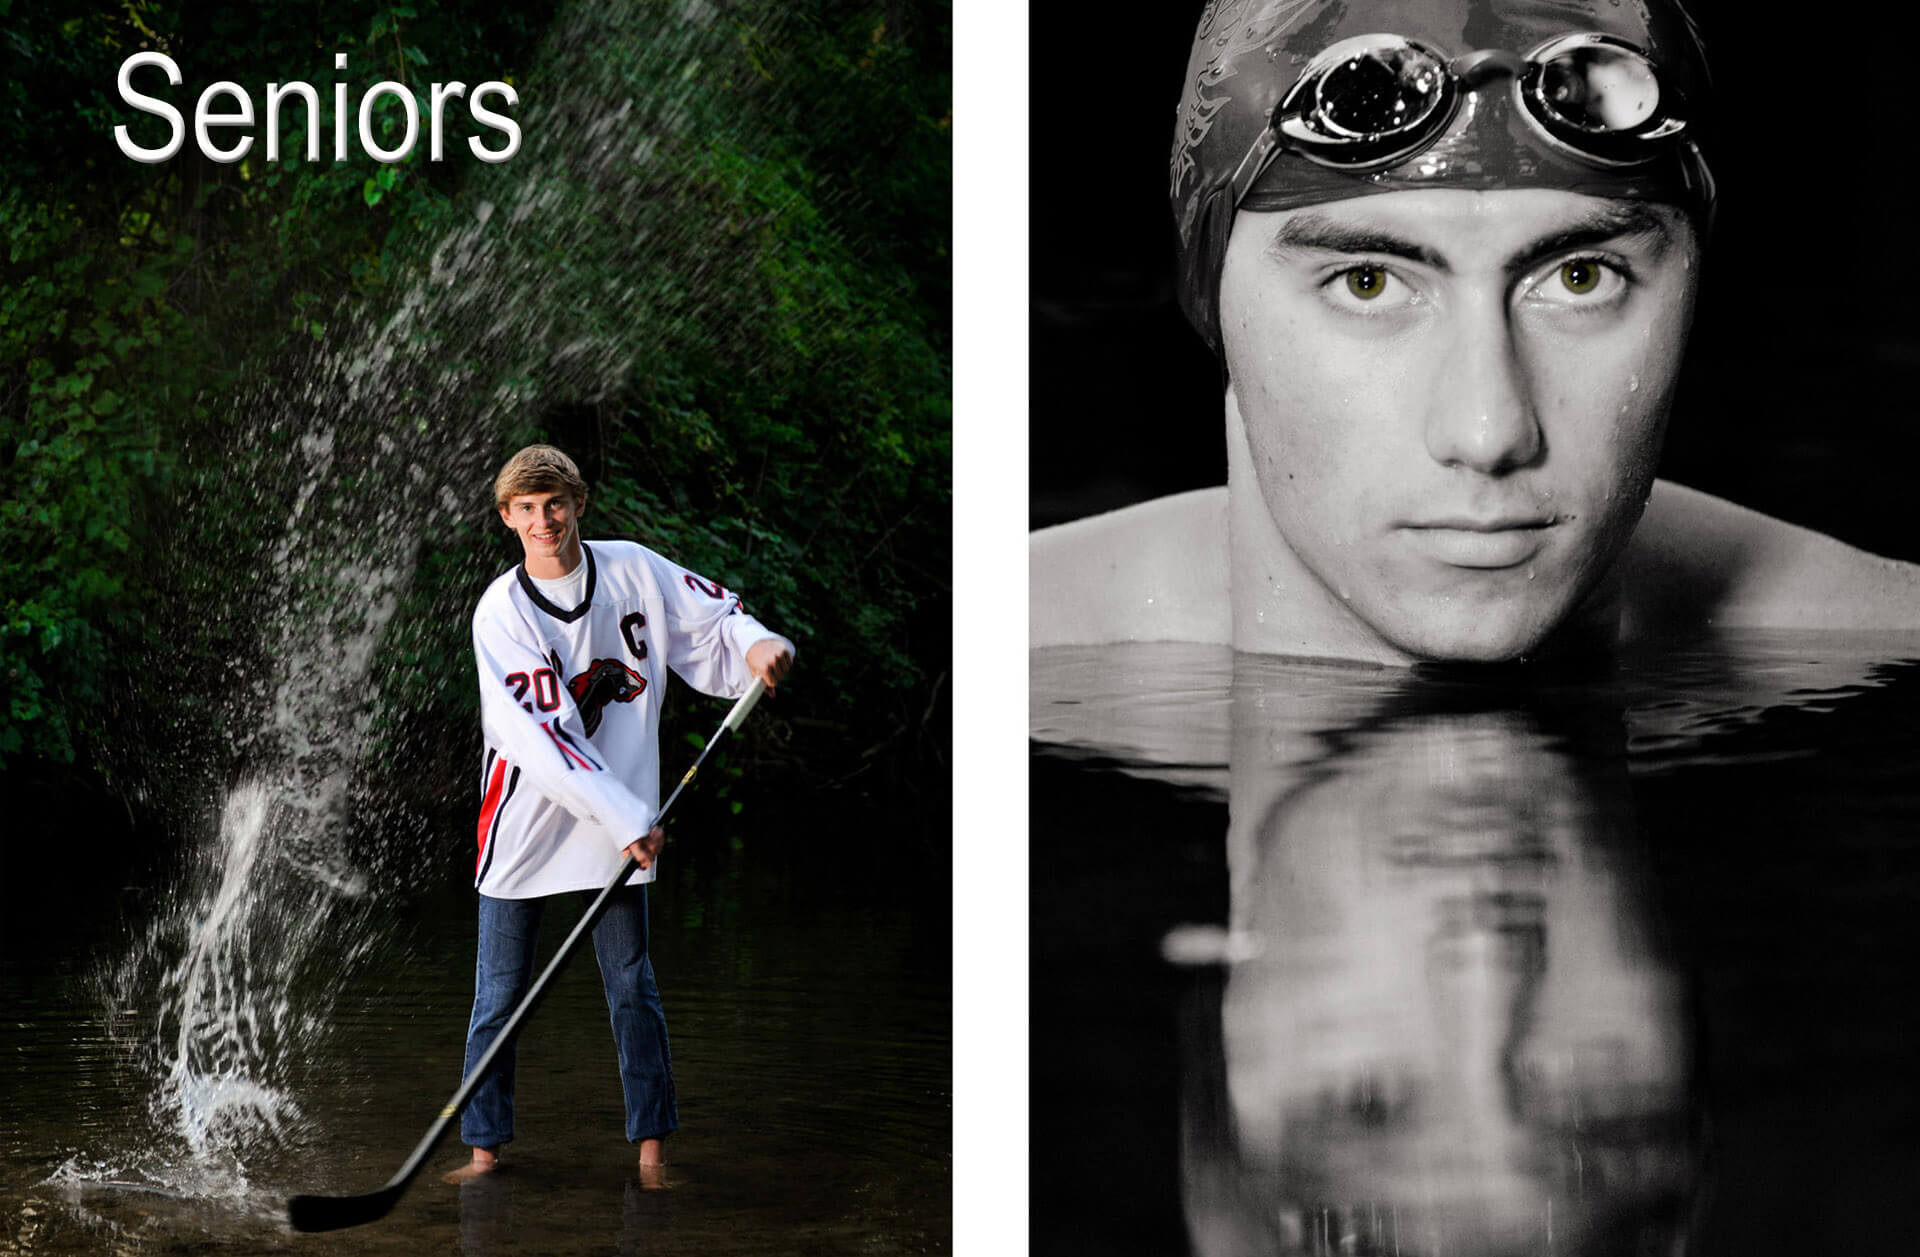 A Farmington Hills, Michigan senior photo showcasing the variety of images I can get within my senior photography sessions which has made Marci Curtis one of the best Michigan senior photographers.